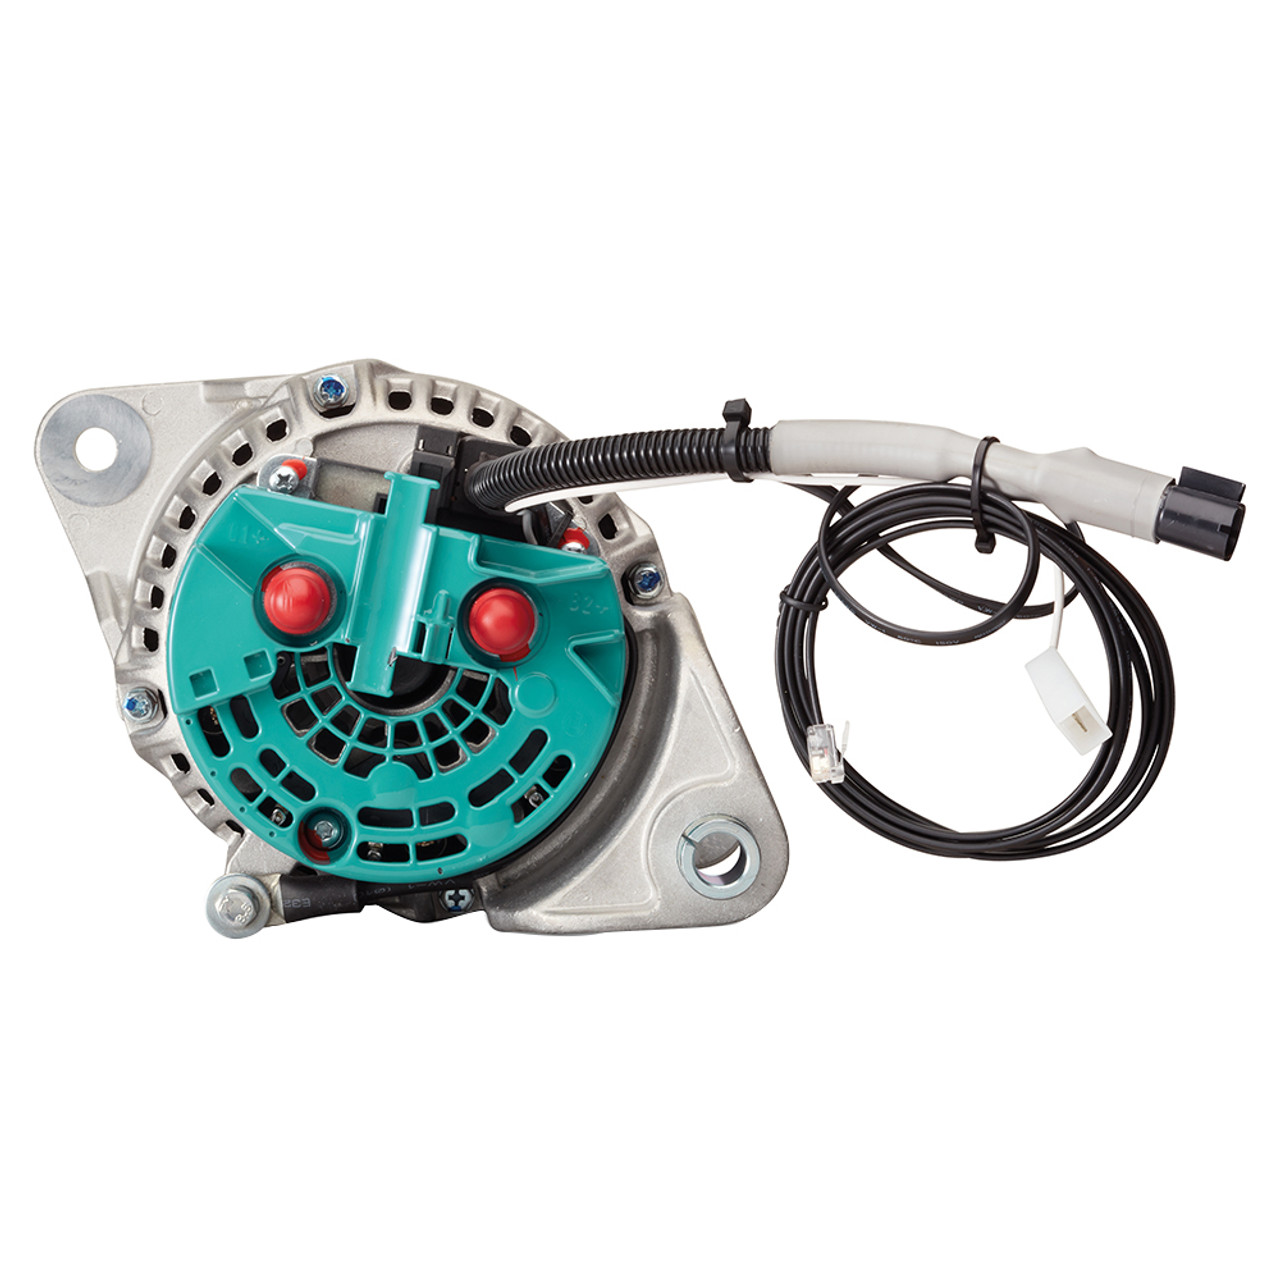 hight resolution of  mastervolt alpha compact alternator 28 80 volvo penta with pulley 8 ribs